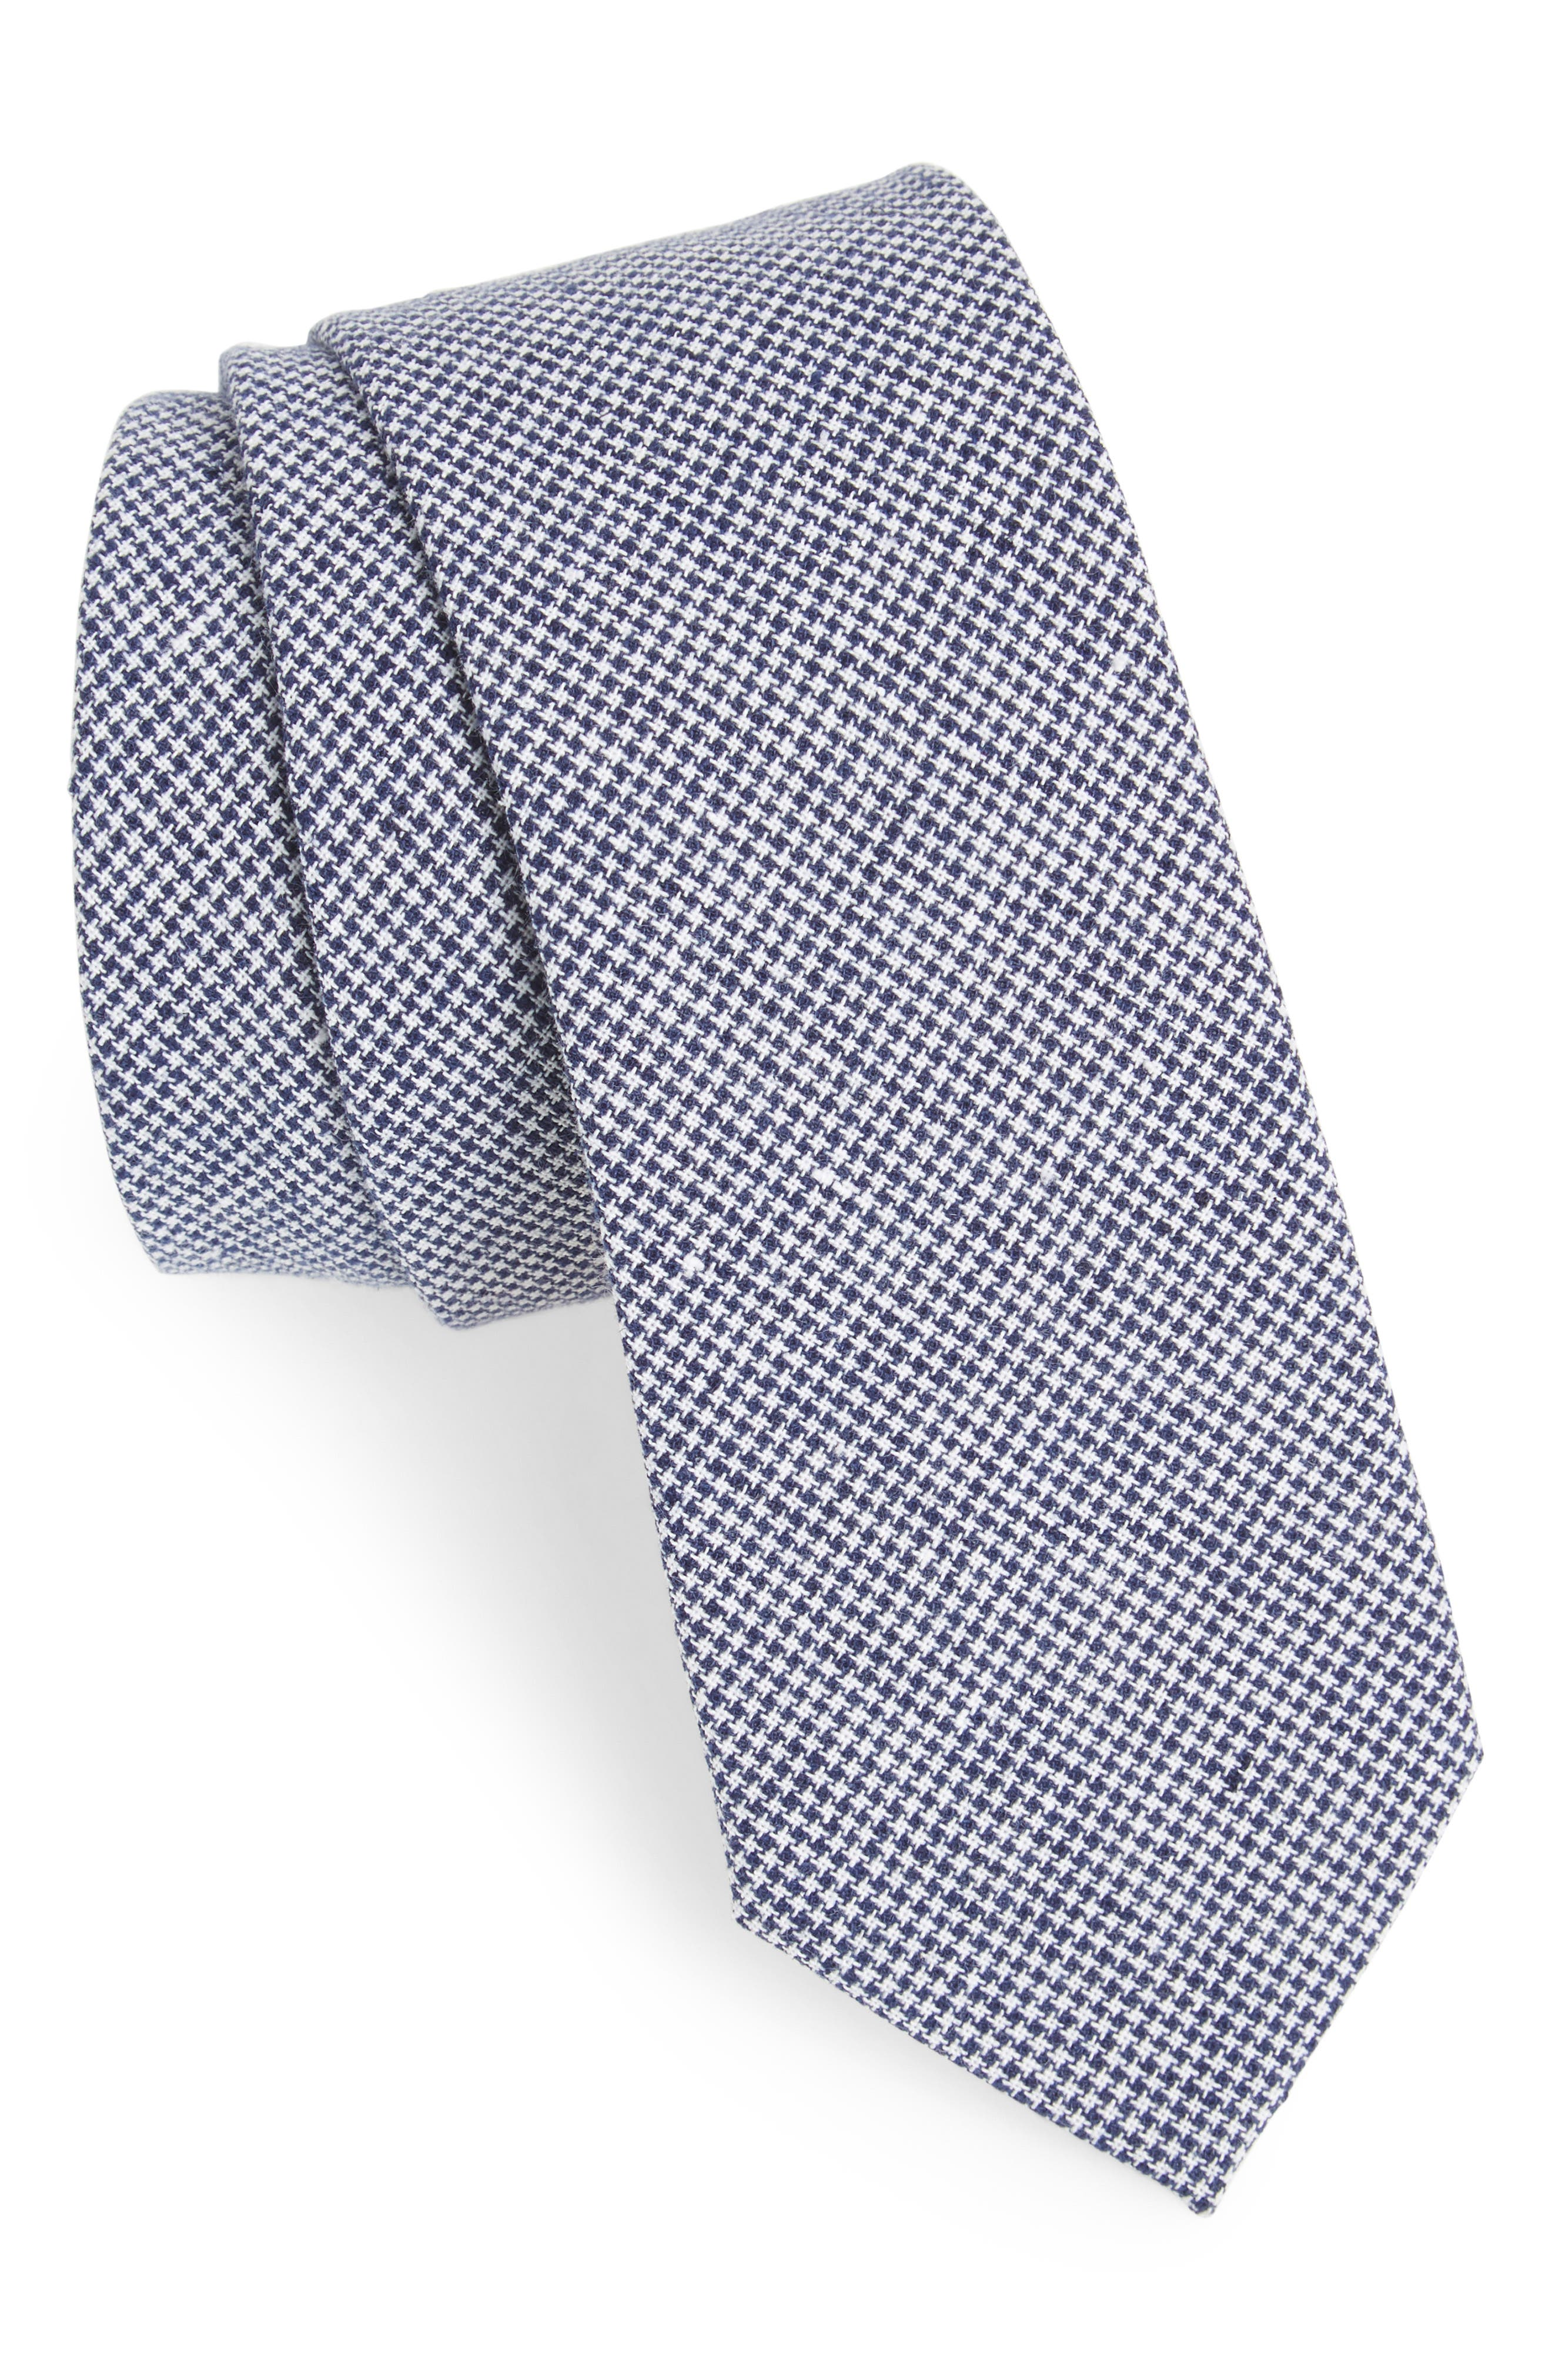 Ralph Houndstooth Cotton & Linen Tie,                             Main thumbnail 1, color,                             410